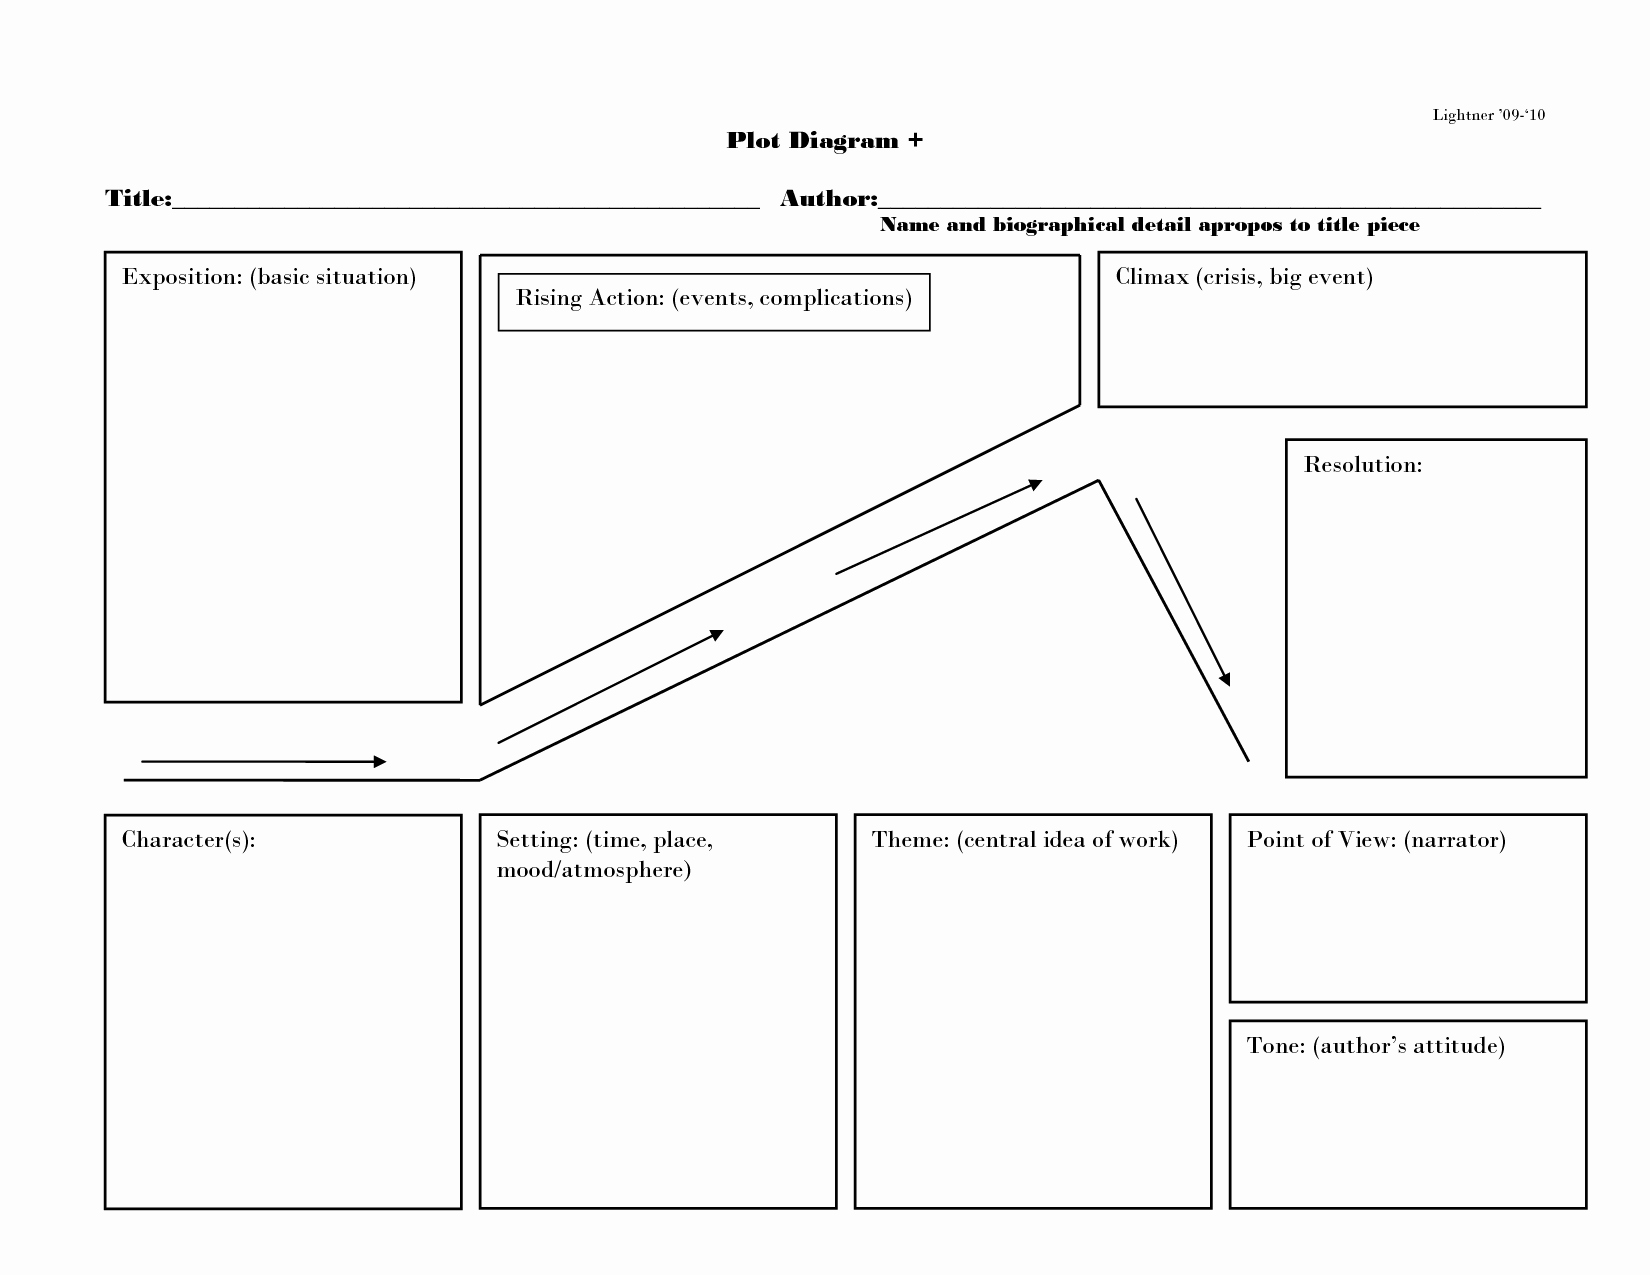 Plot Diagram Graphic organizer Best Of Plot Diagram Plot Diagram 09 10 Plot Diagram